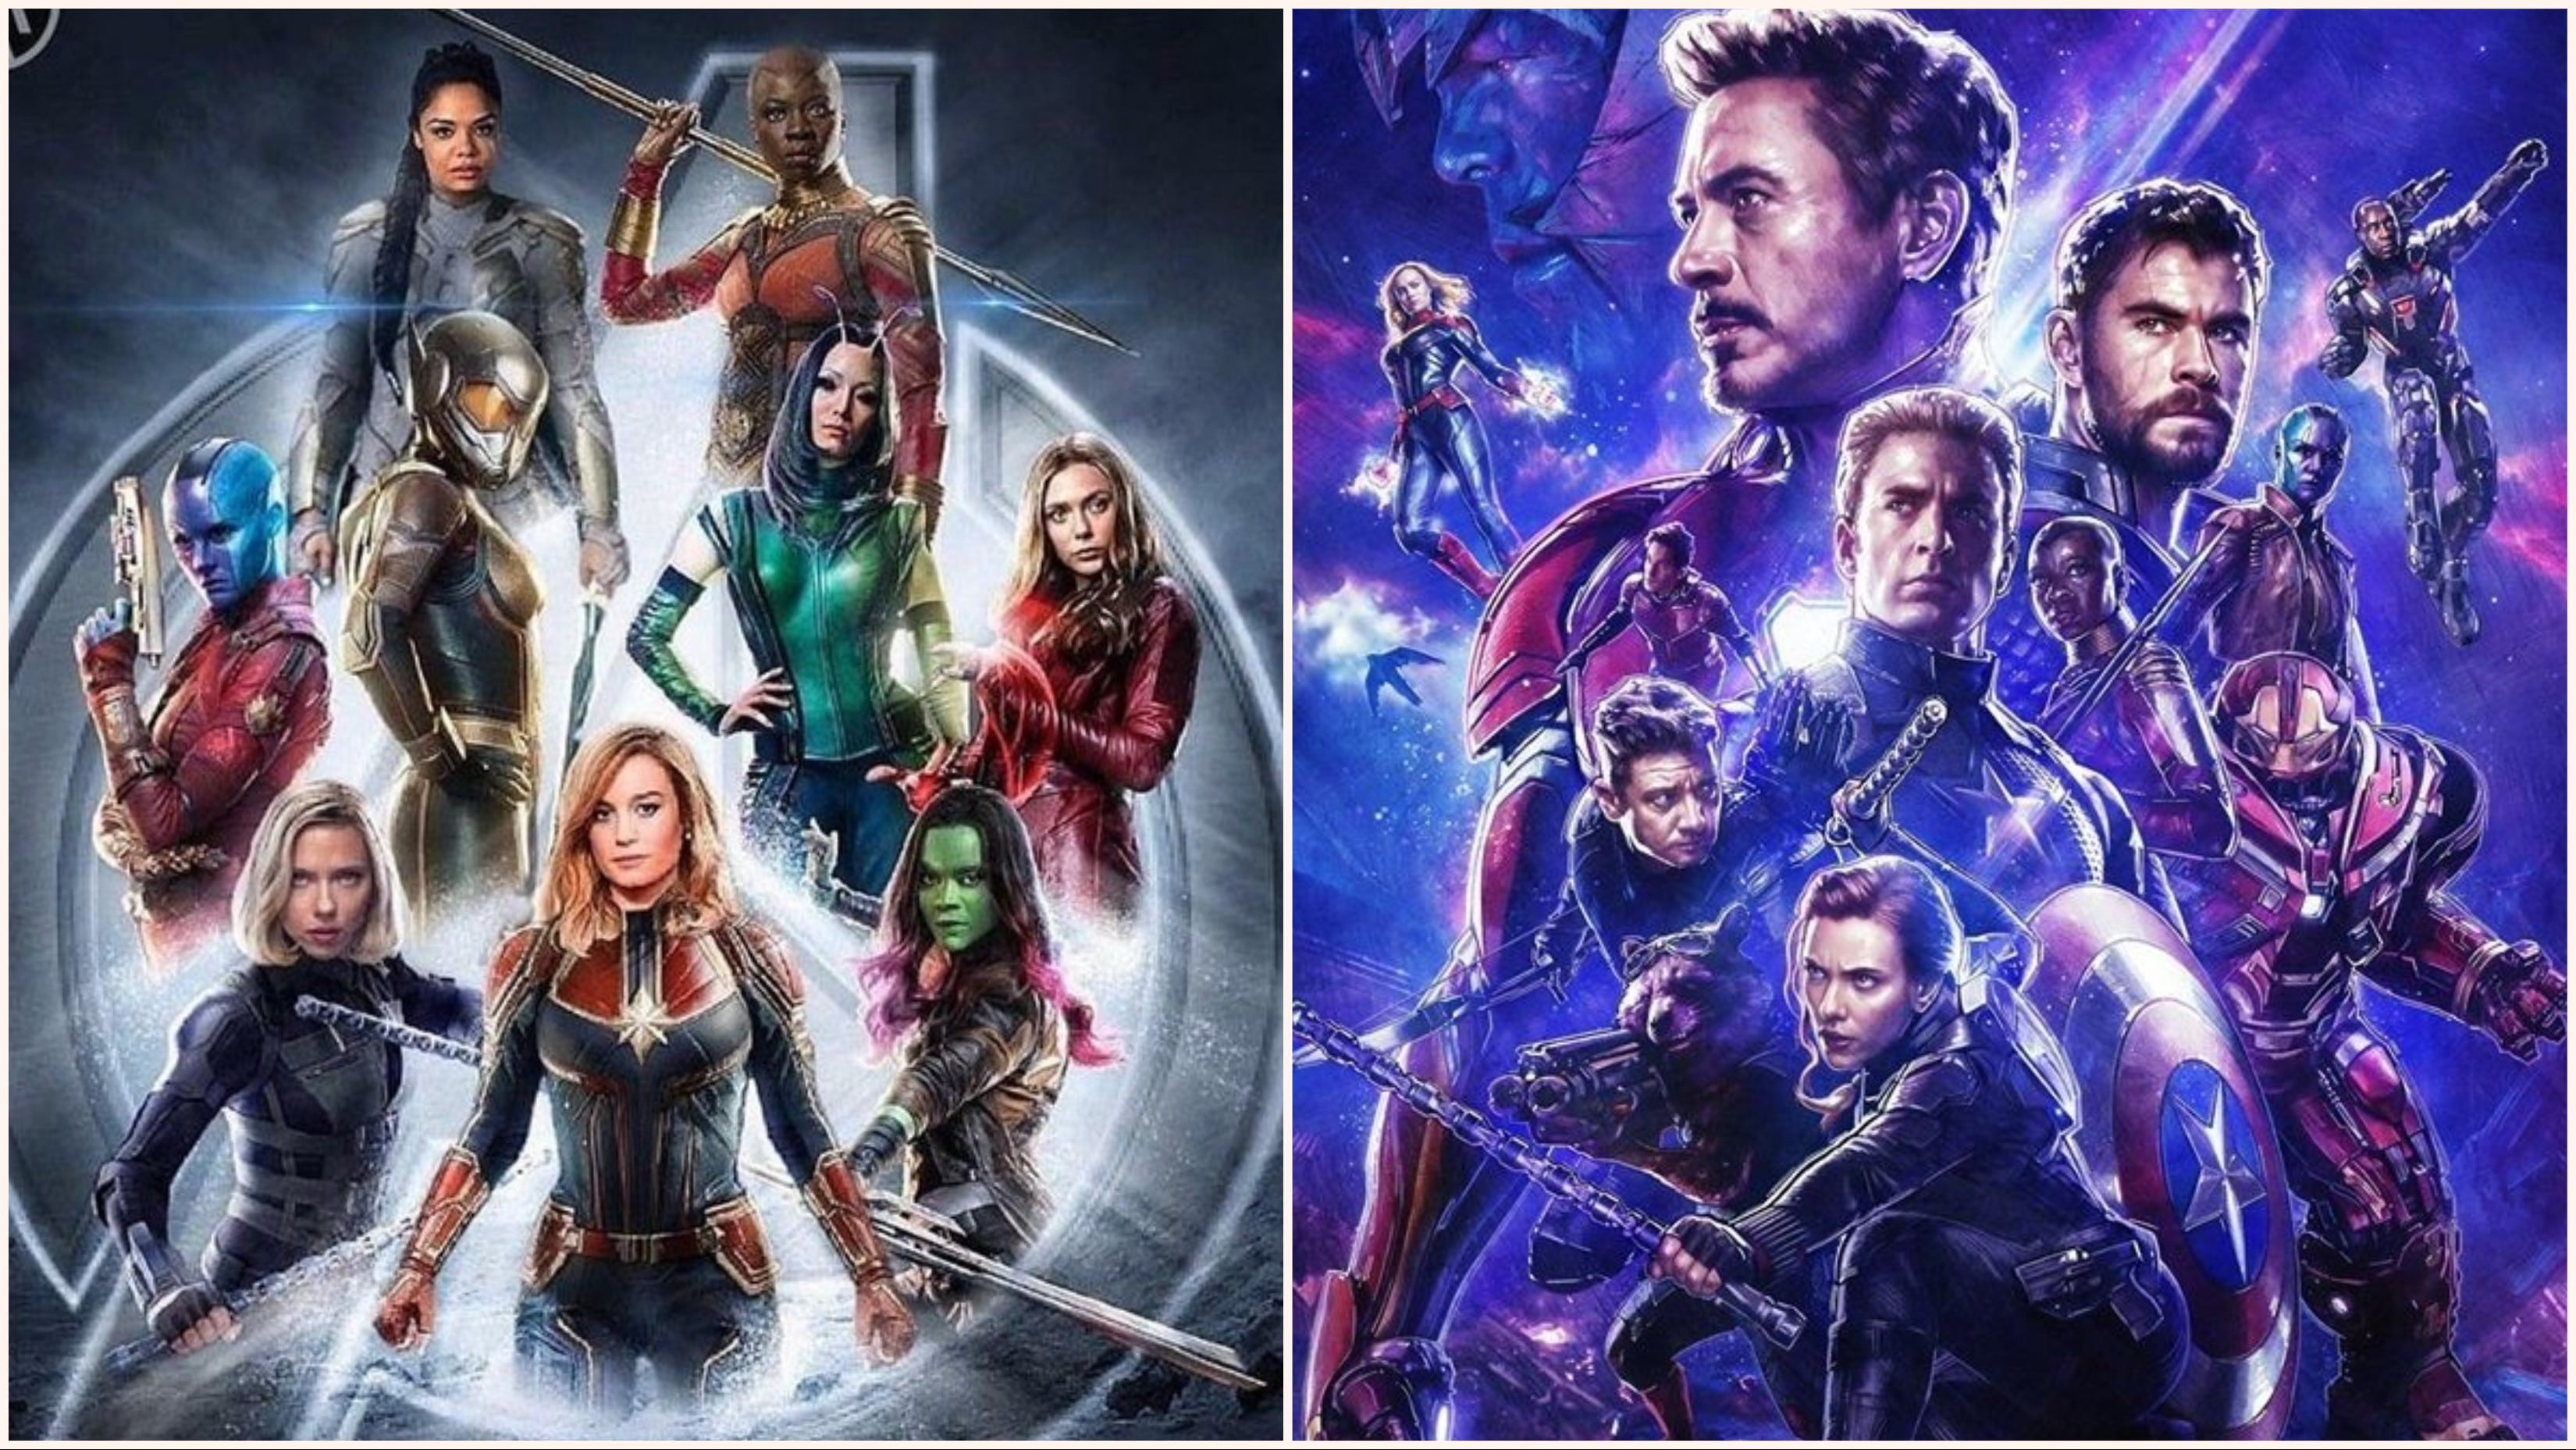 All-Female Avengers Movie Teased By 'Avengers: Endgame'?